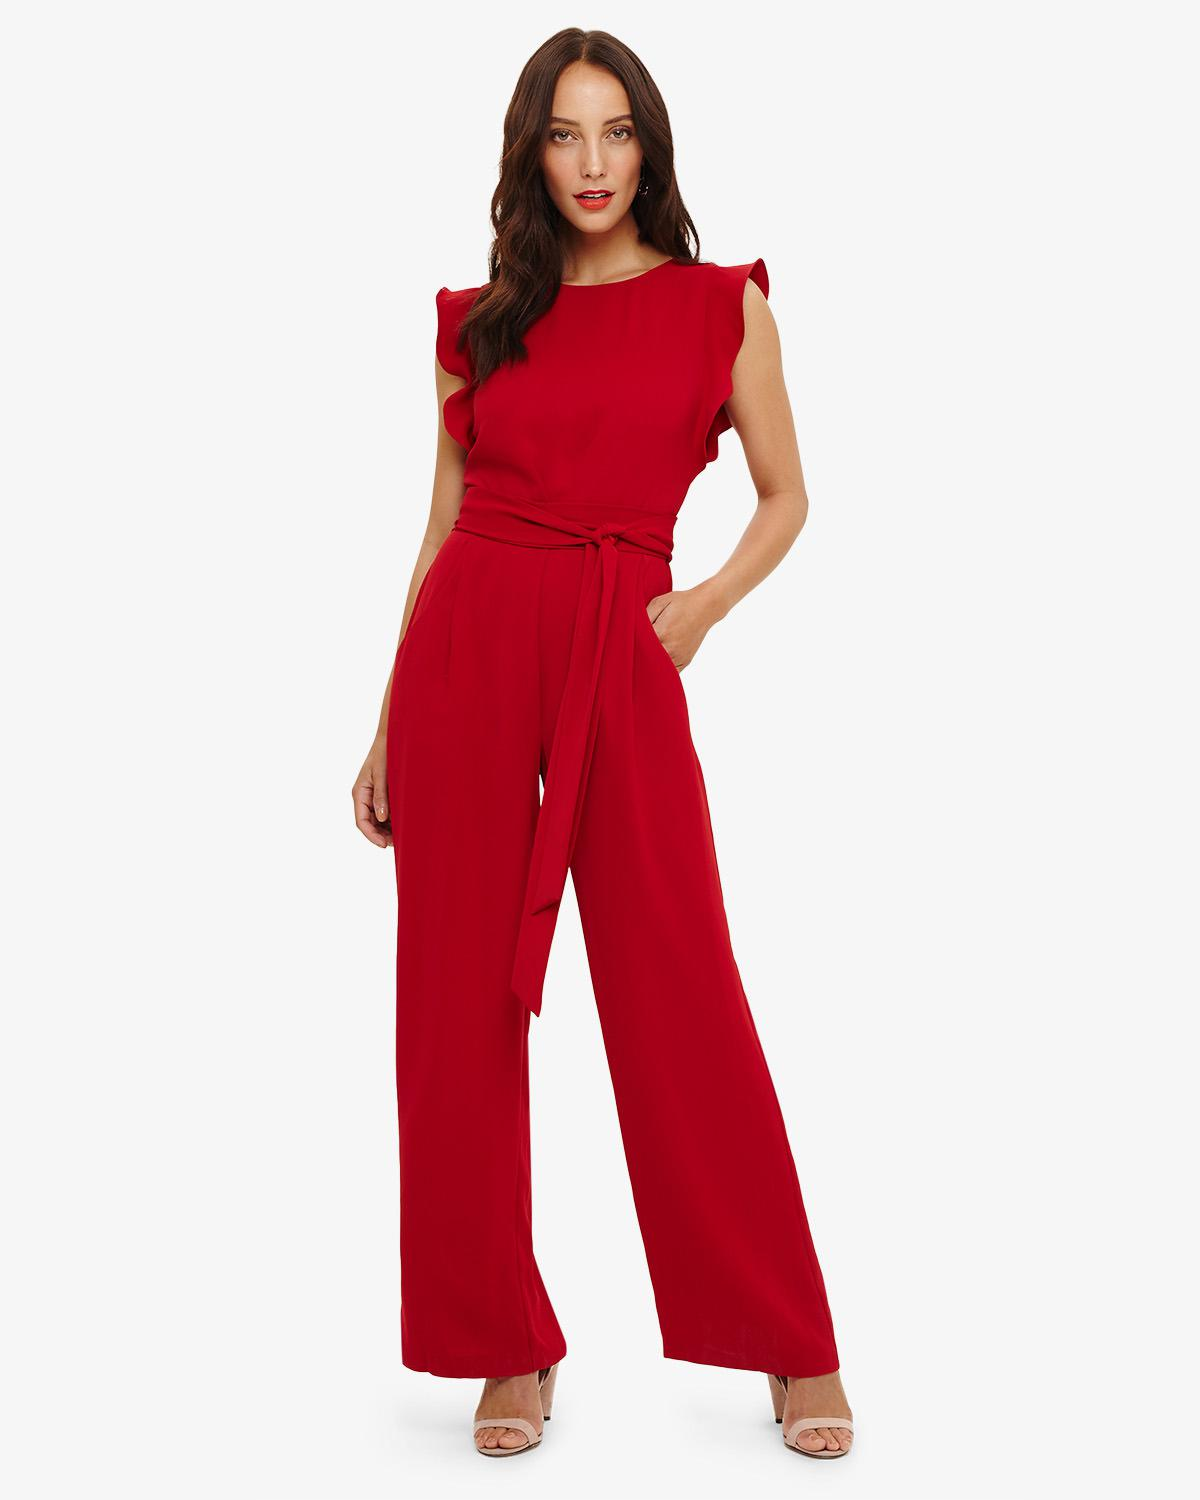 40eacea824b2 Phase Eight Red Victoriana Jumpsuit in Red - Lyst